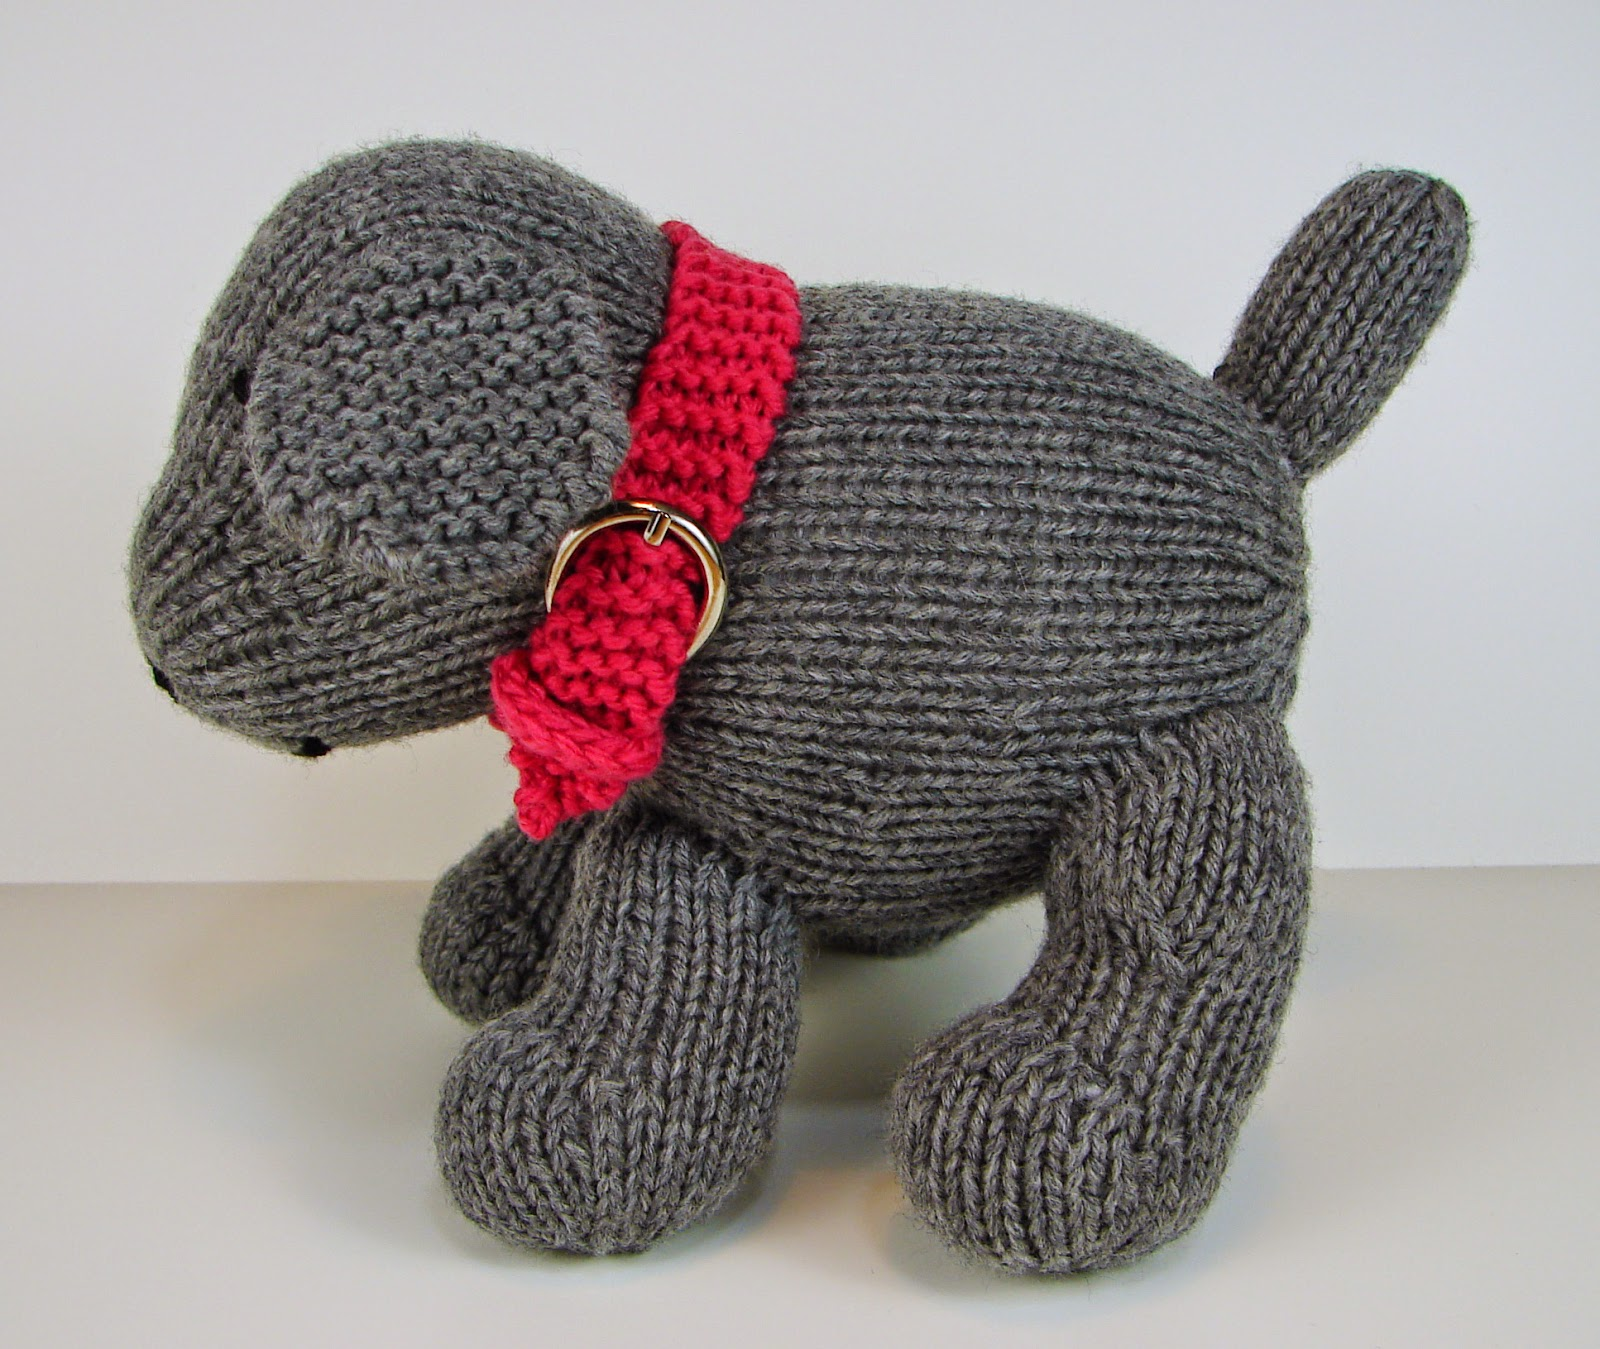 knit dog toy stuffed pattern